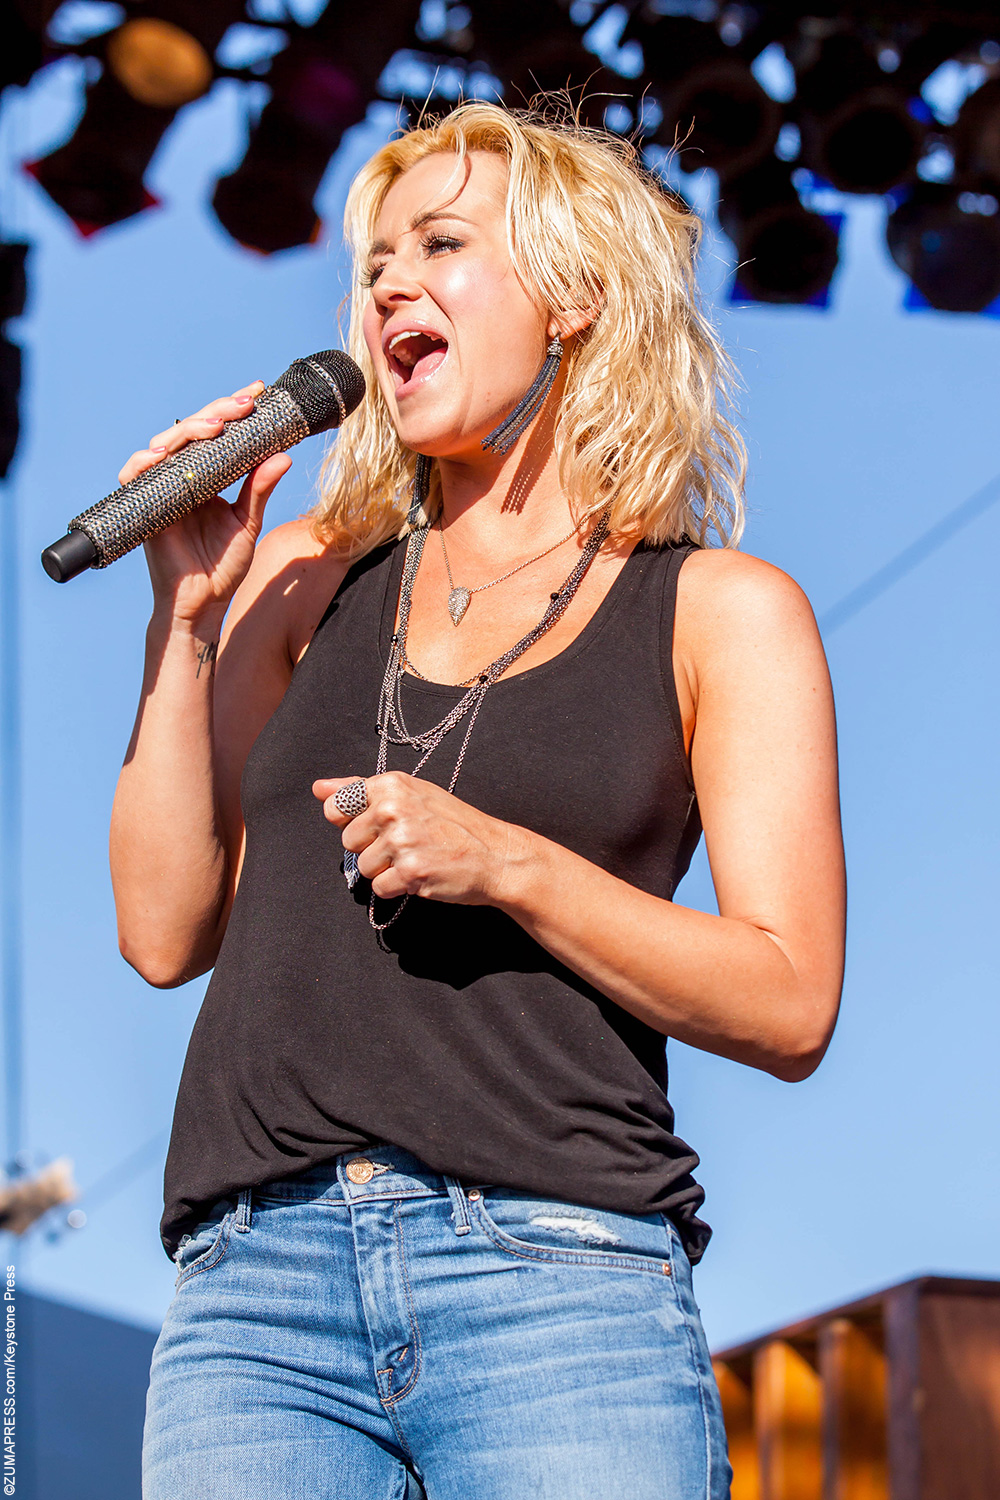 Kellie Pickler was 19 when she auditioned forAmerican Idolin its fifth season. She was one of judge Simon Cowell's favorite contestants due to not only her talent, but her innocence and small town ways. The sweet Southern country singer came in sixth place on the show and has since released four albums. Her first one, […]